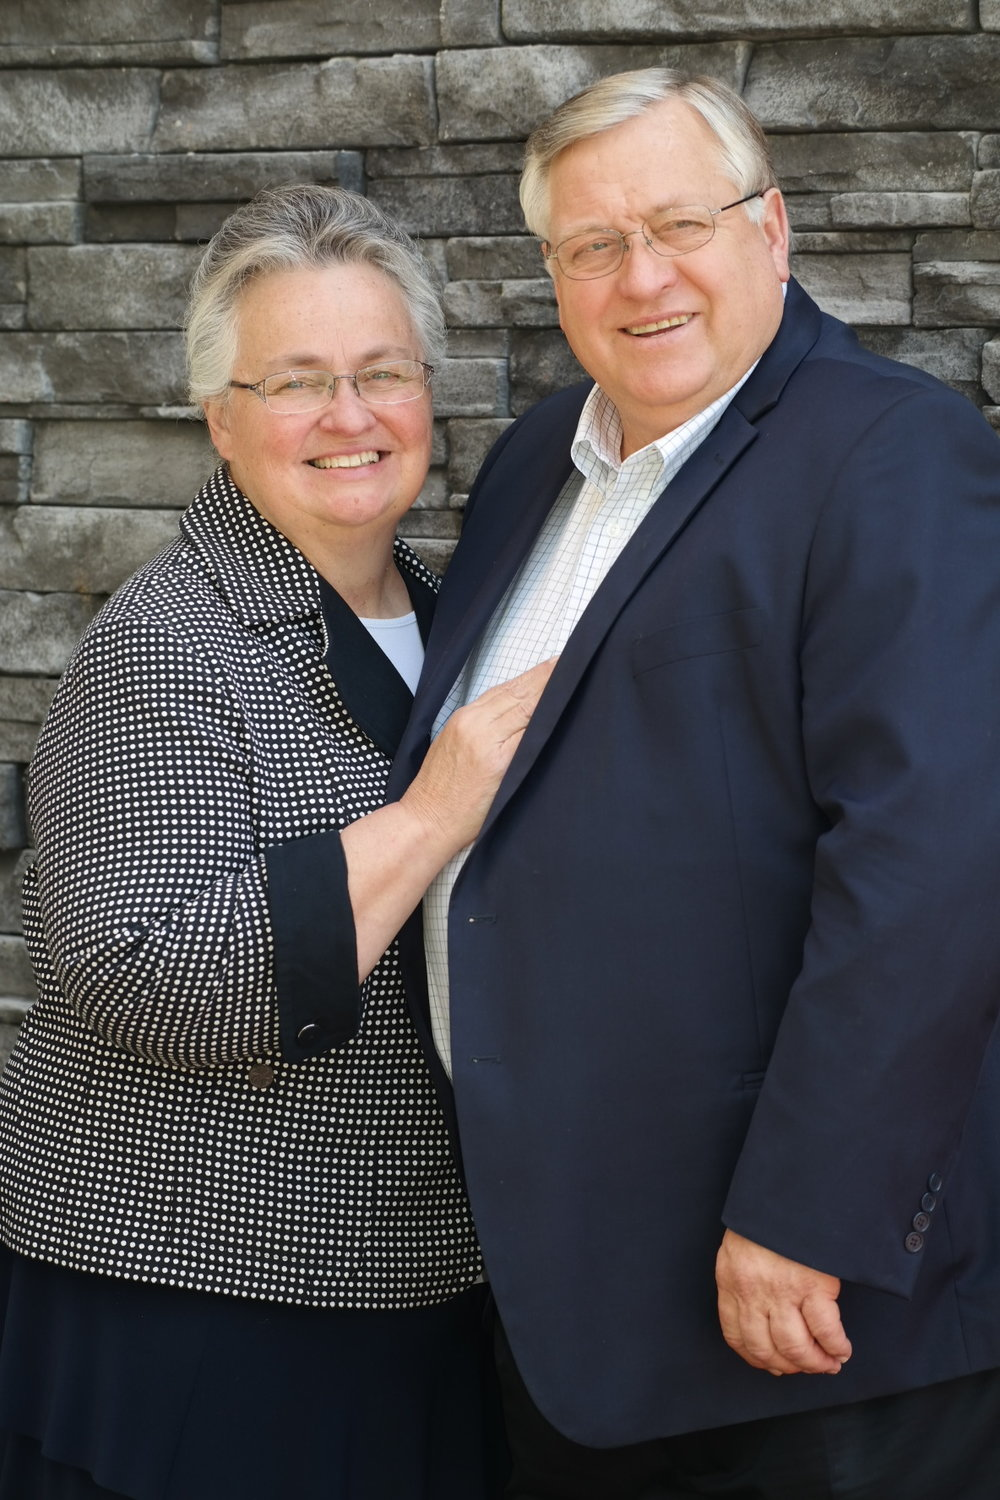 Pastor Rev. Don and June ingram